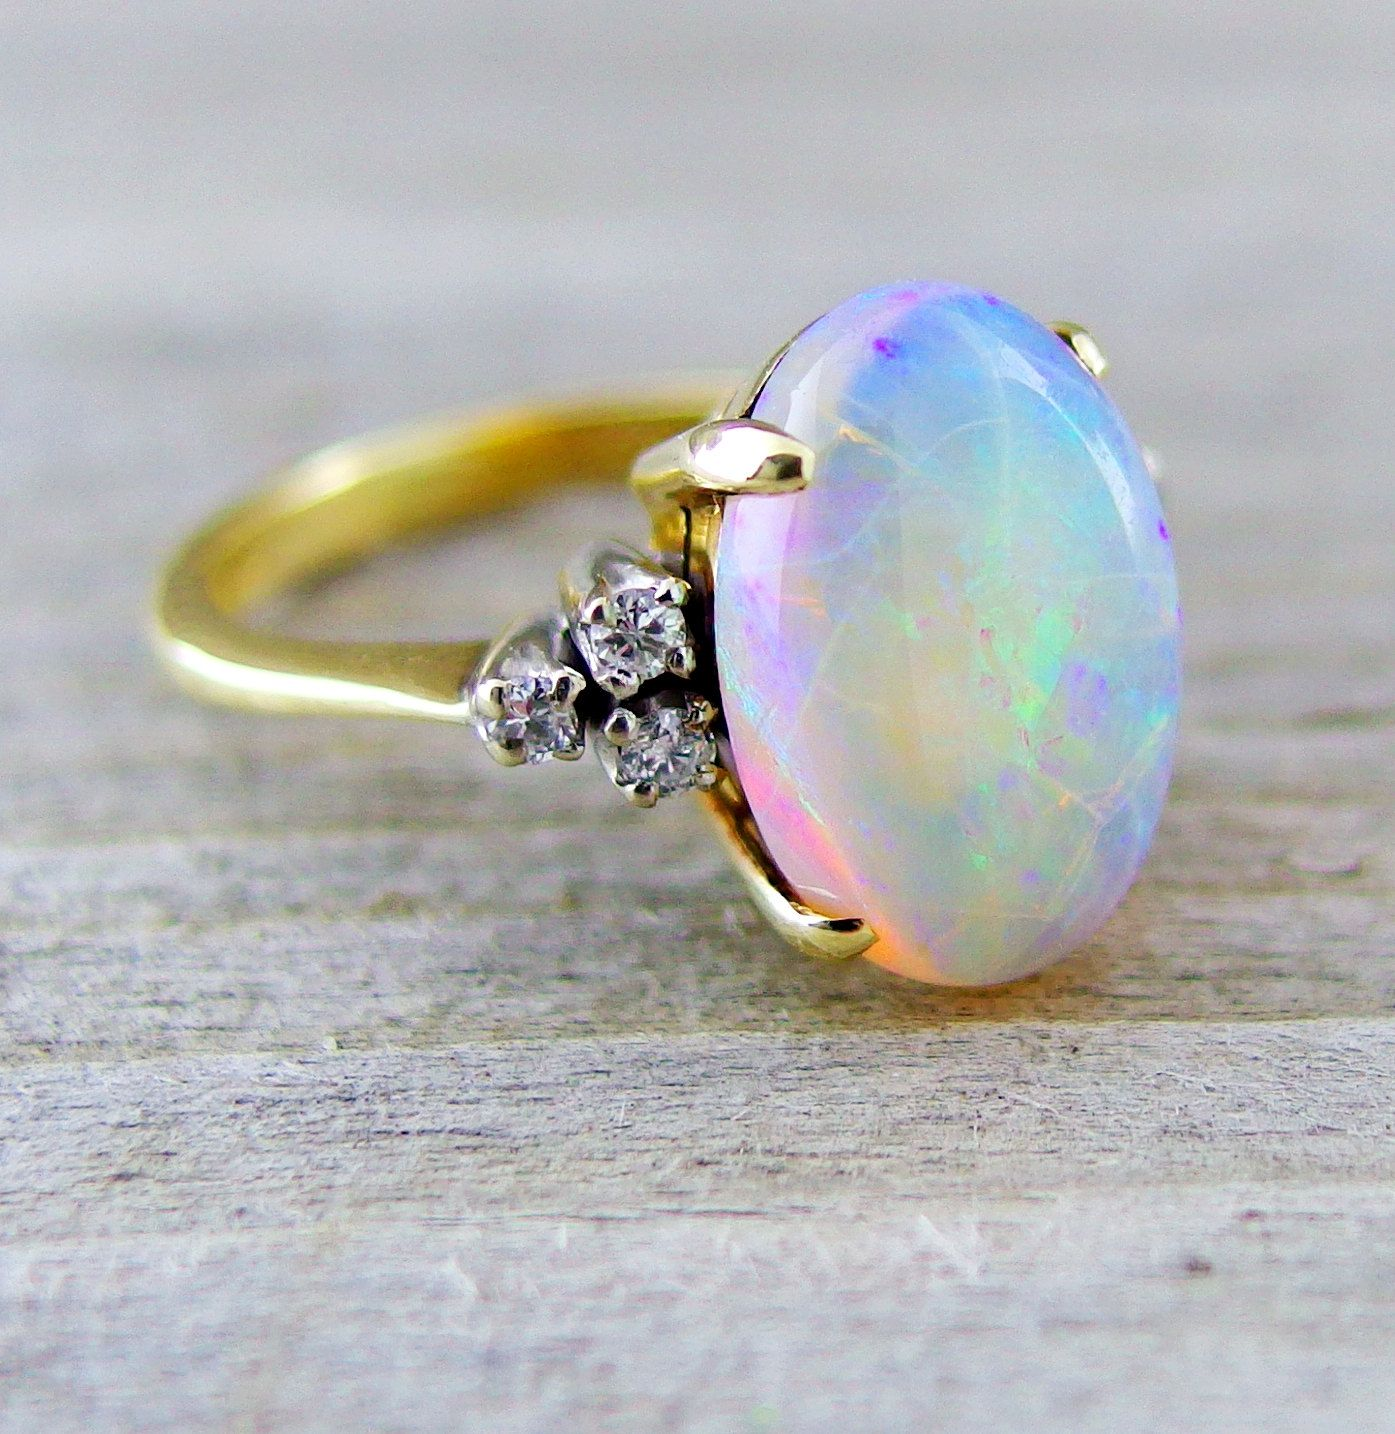 Vintage 312 Carat Opal And Diamond Engagement Anniversary Ring 14kt Yellow  Gold Via Etsy